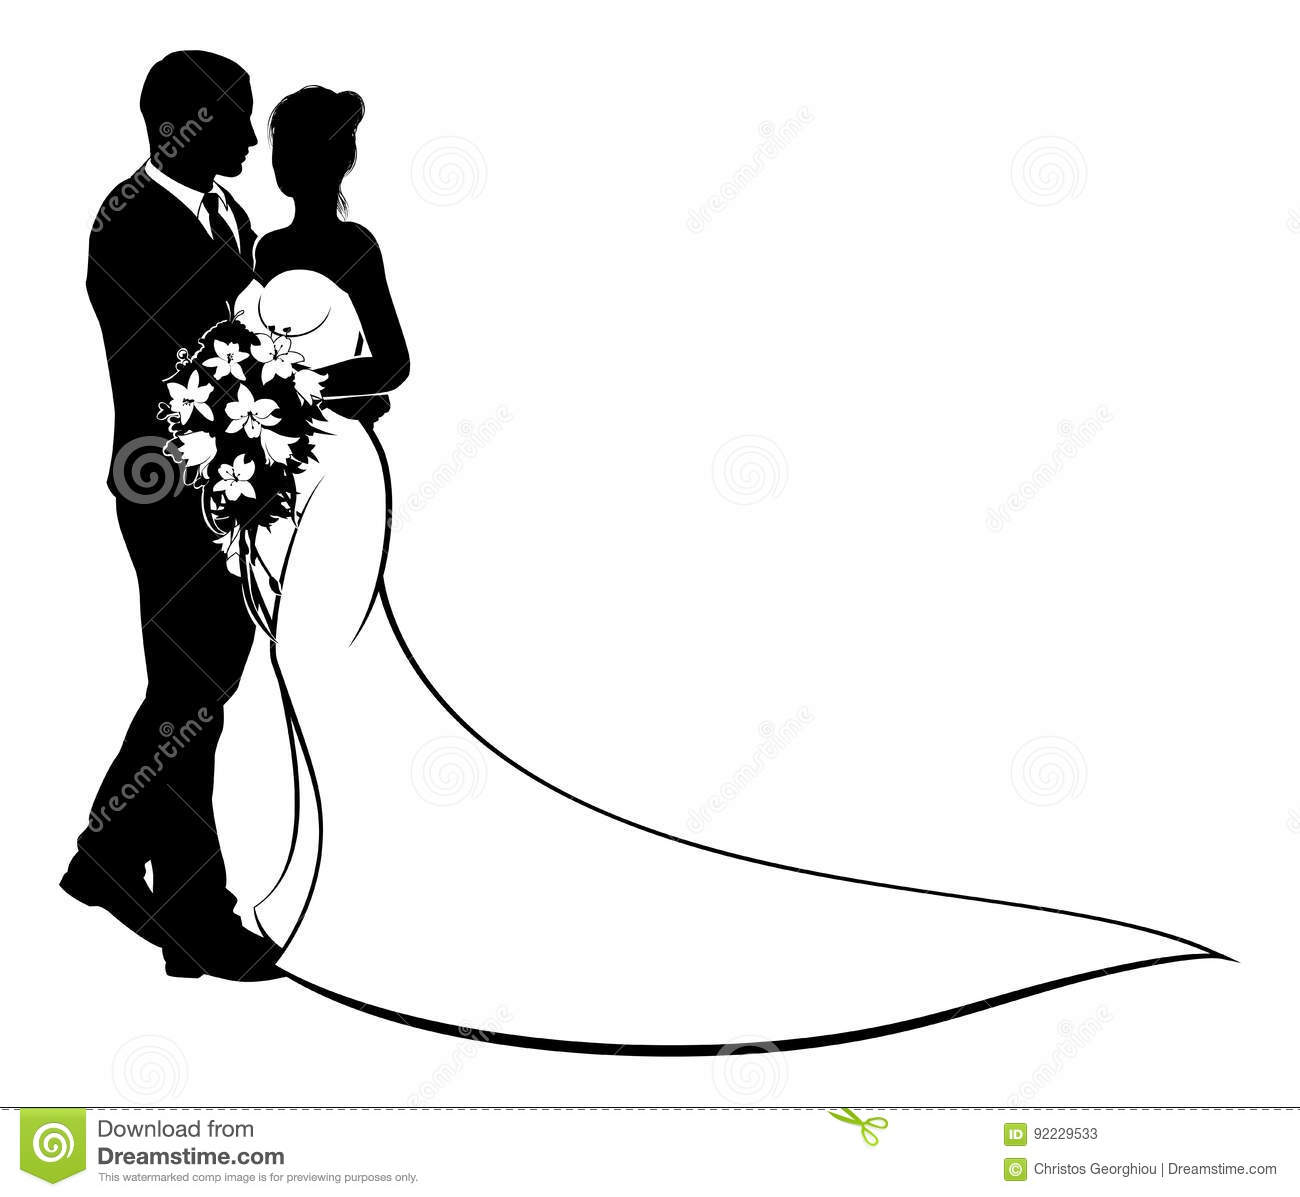 Bride And Groom Silhouette Wedding Concept Stock Vector.